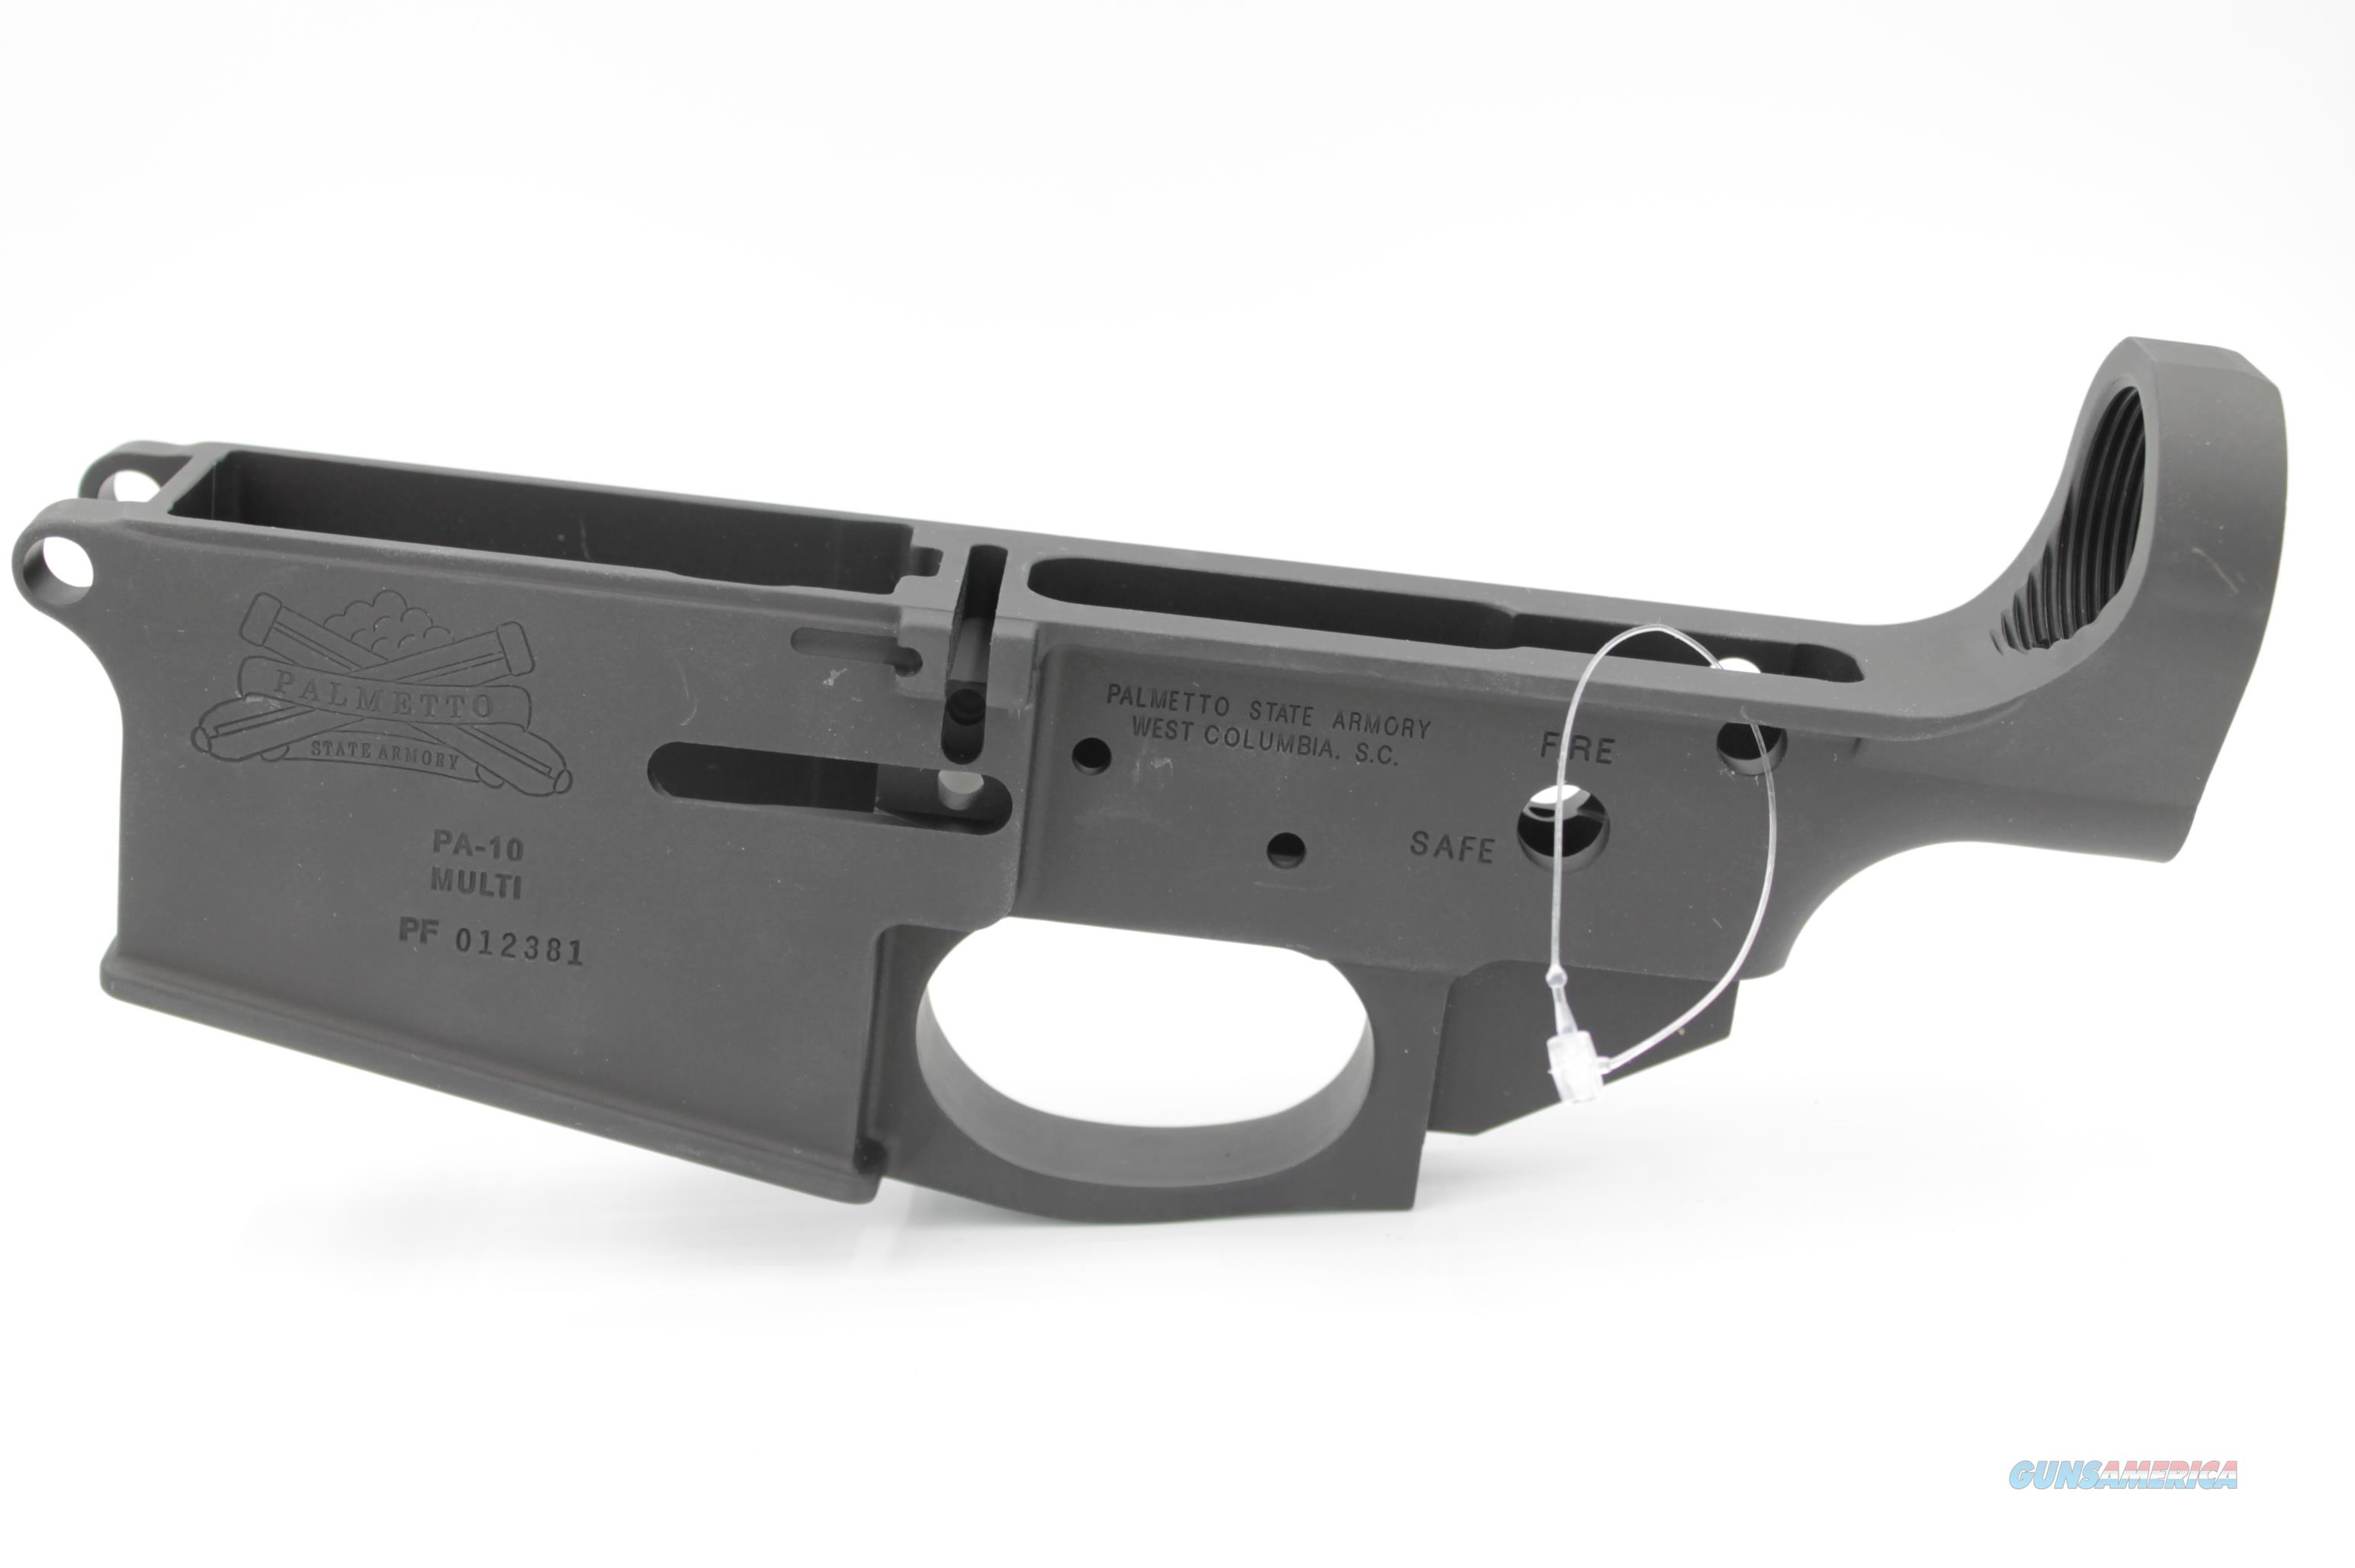 Palmetto State Armory PA-10 .308 Stripped Lower Receiver  Guns > Rifles > AR-15 Rifles - Small Manufacturers > Lower Only